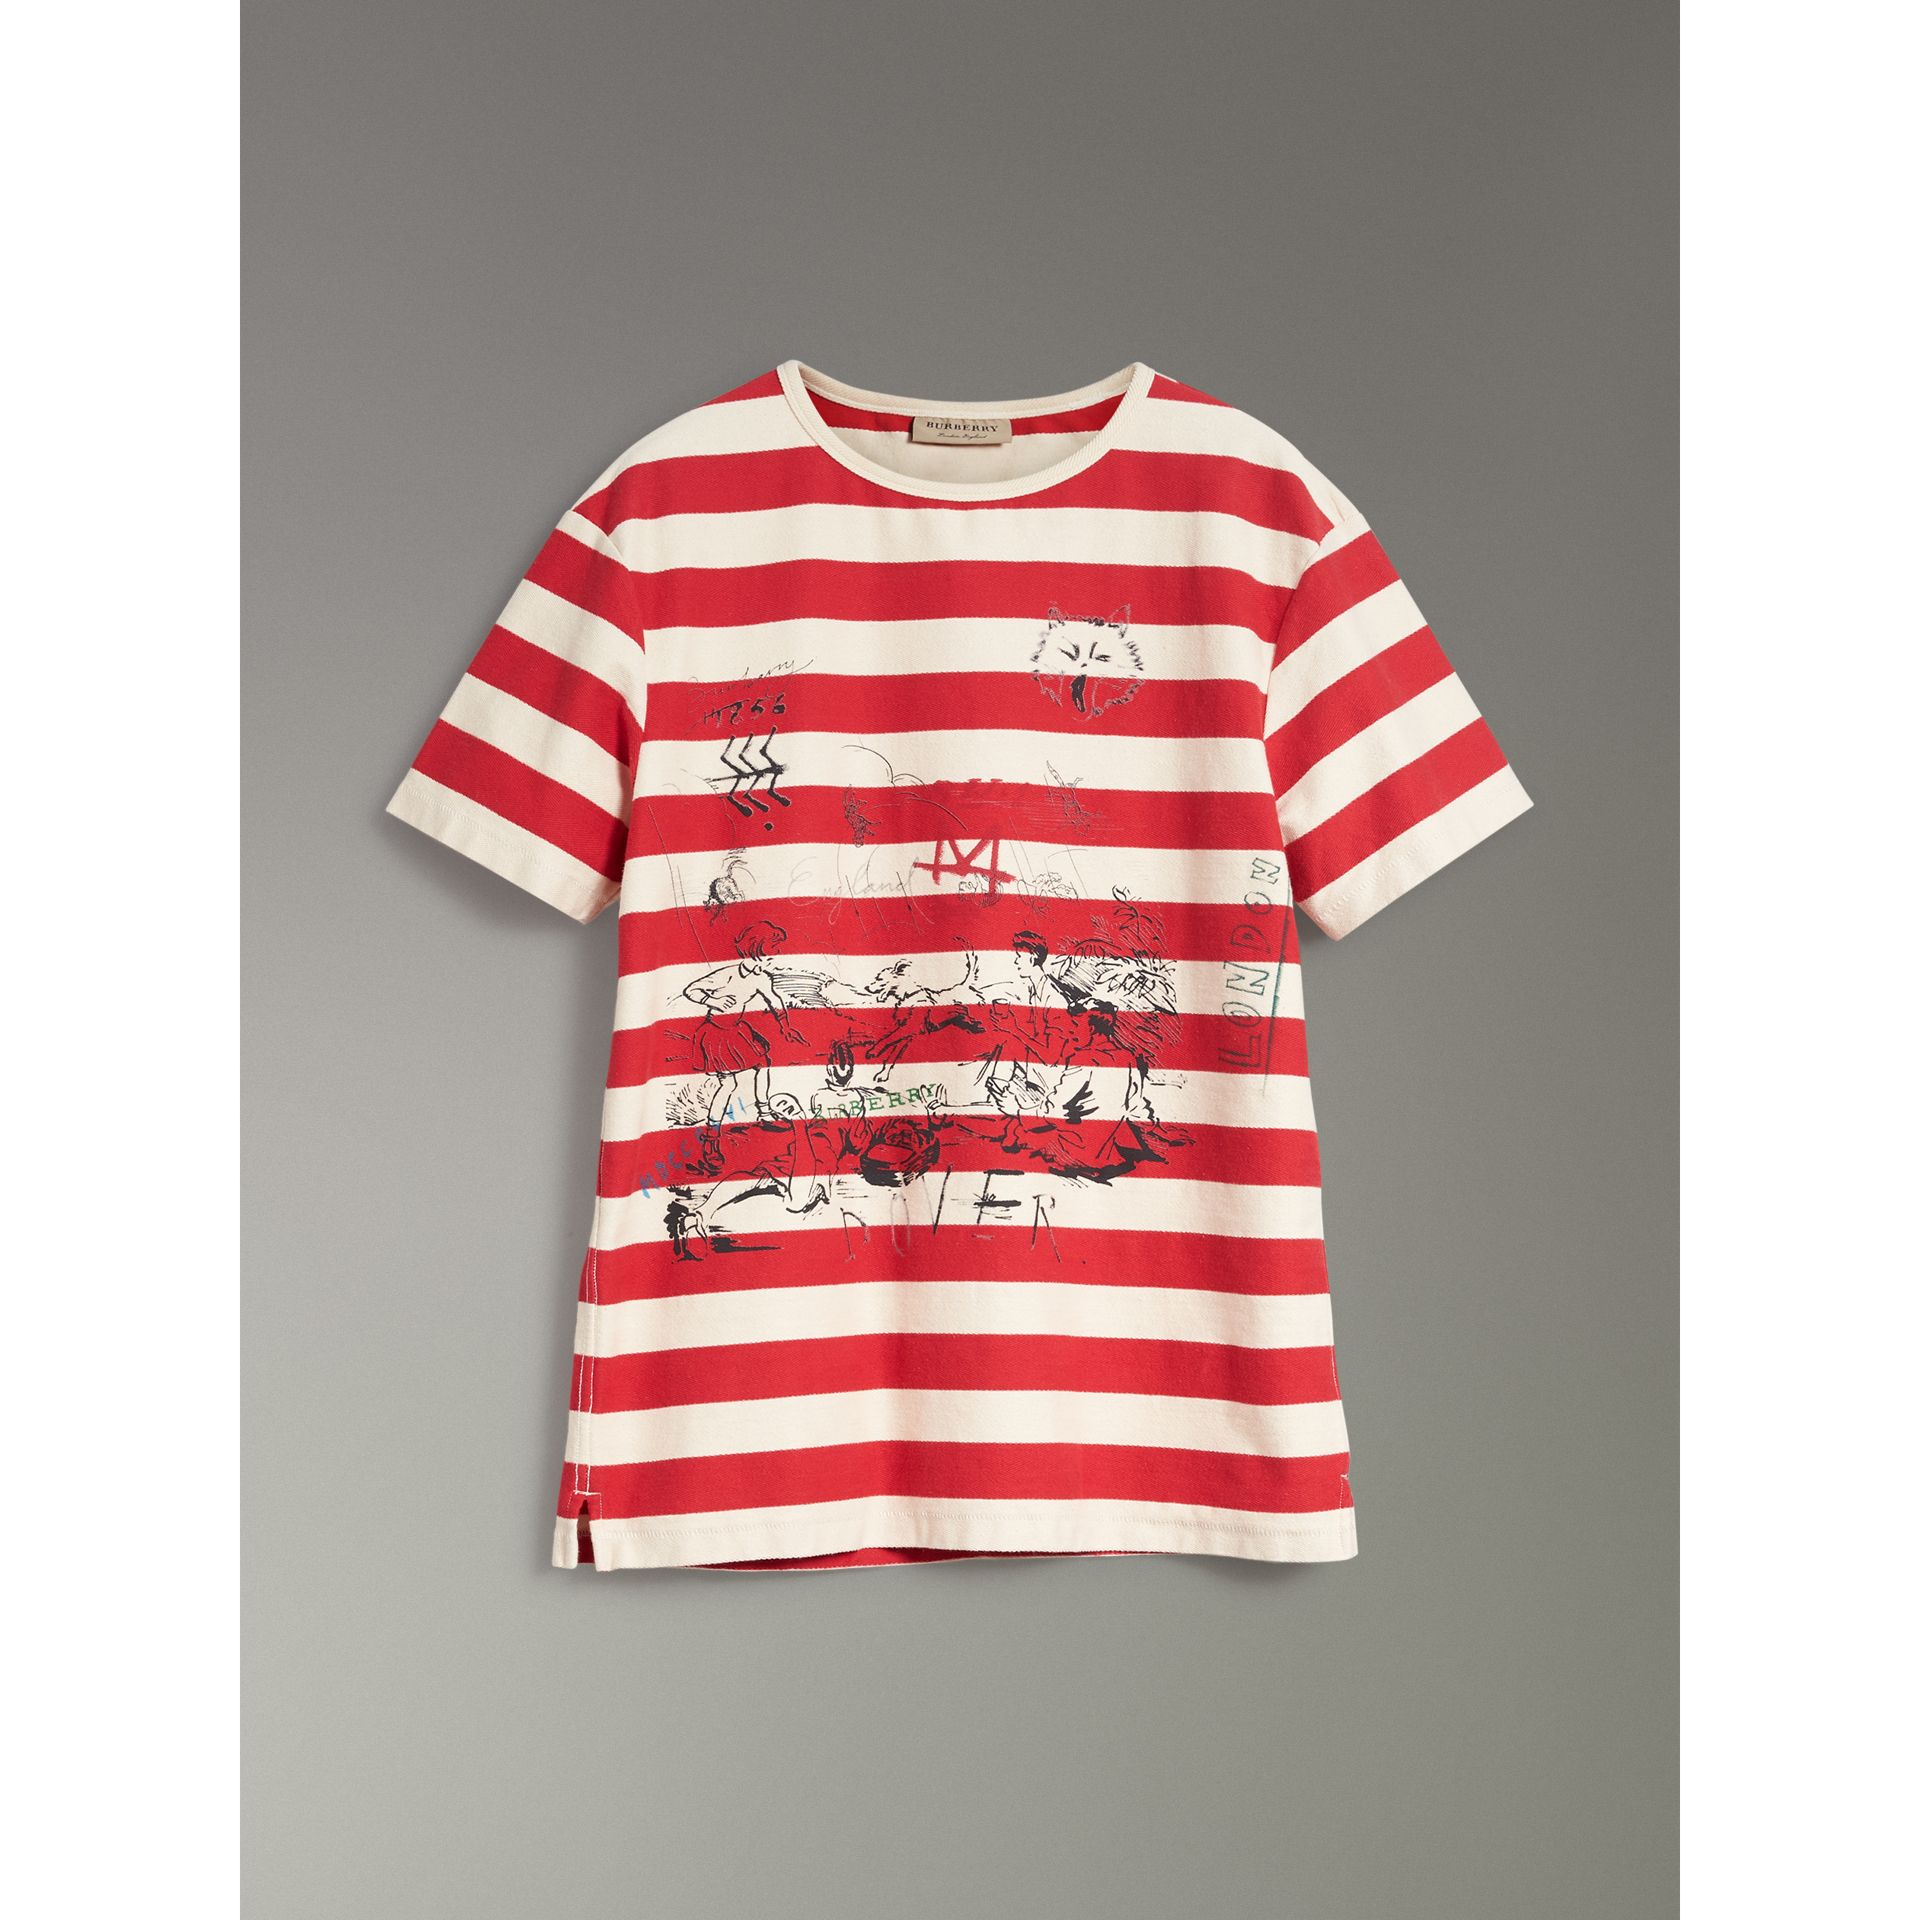 Adventure Print Striped Cotton T-shirt in Off White/parade Red - Men | Burberry United Kingdom - gallery image 3